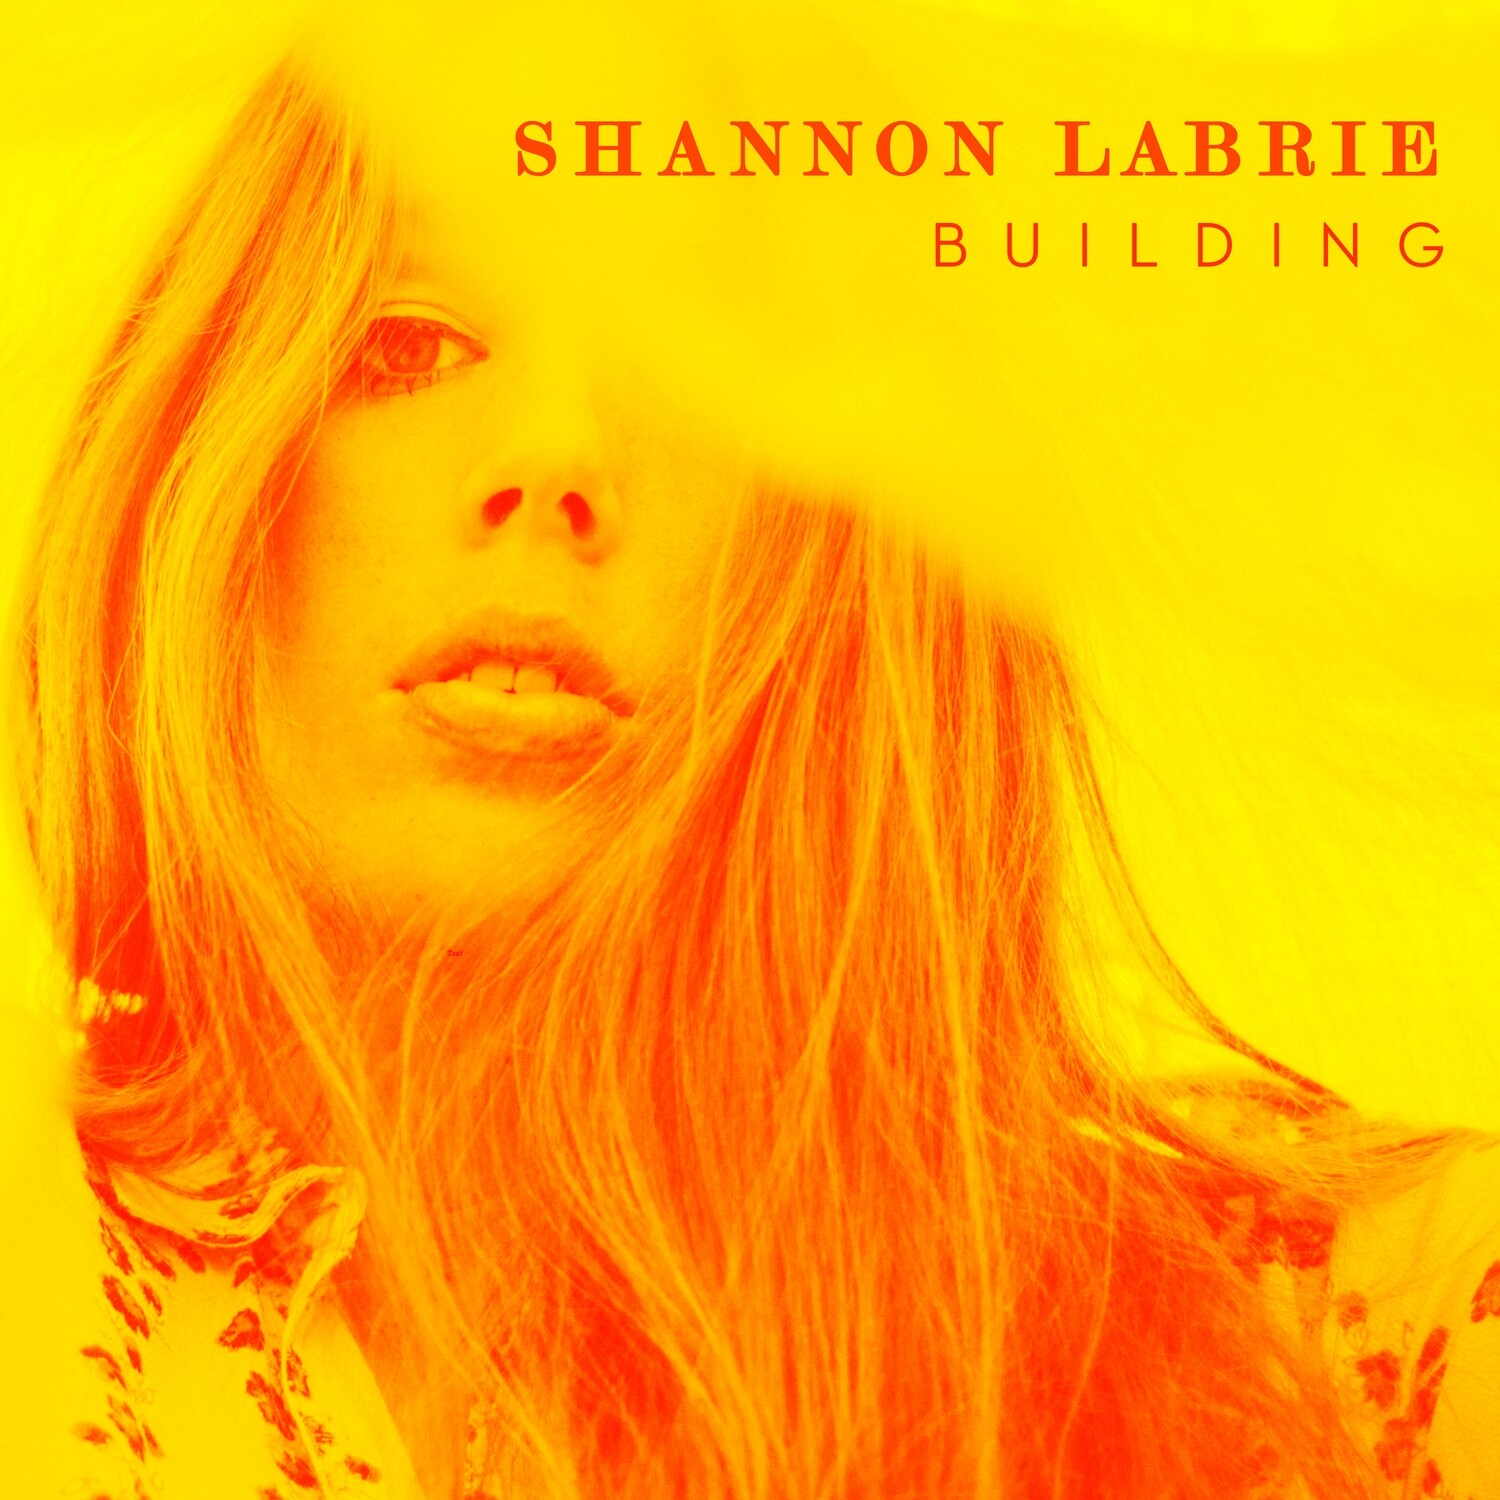 (CD) Building - Shannon LaBrie (Signed) (U.S. Only)